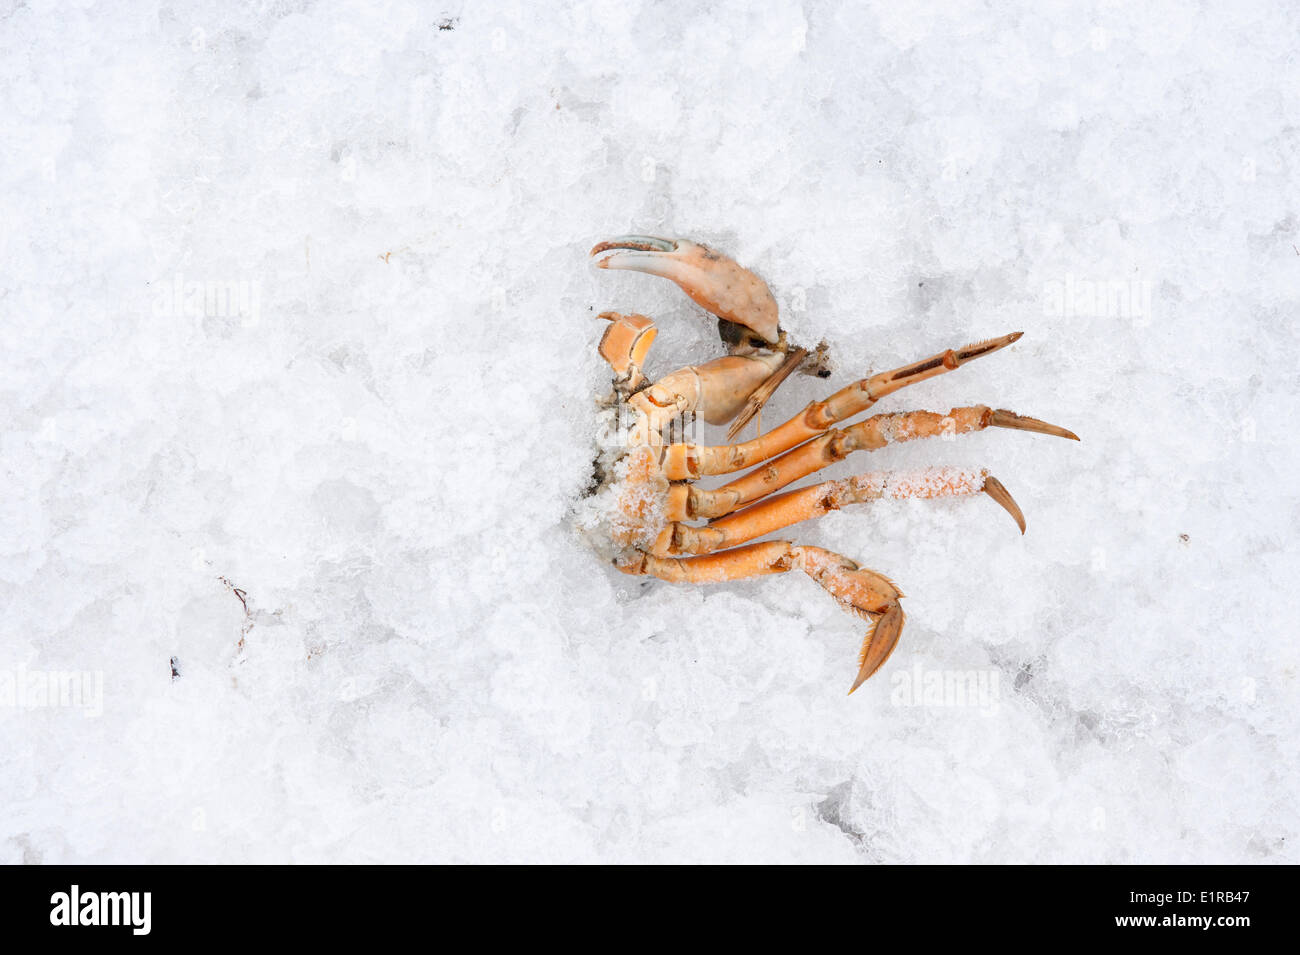 half a crab left behind by a bird on iceflows in the Dutch delta during winter - Stock Image